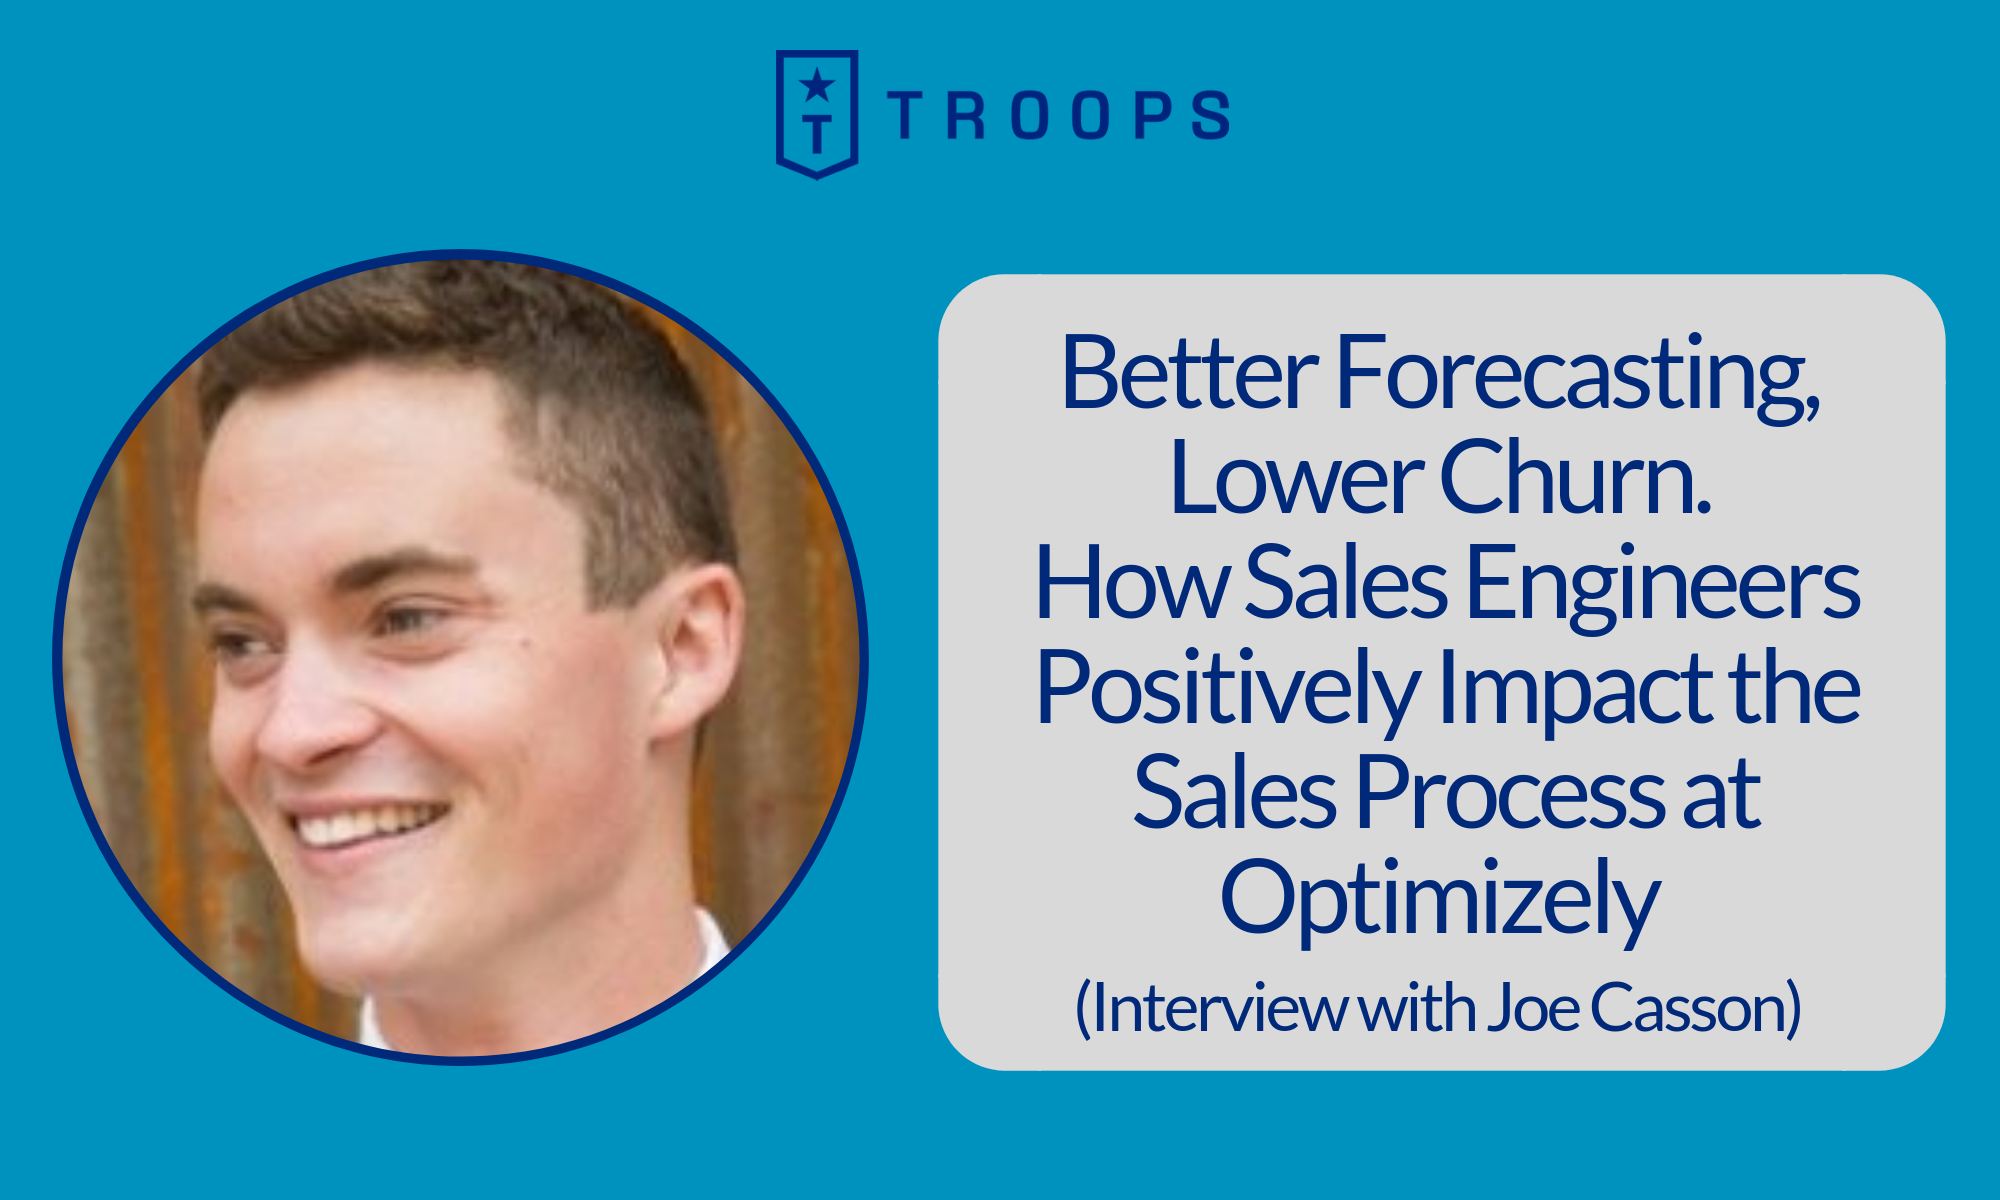 Better Forecasting, Lower Churn. How Sales Engineers Positively Impact the Sales Process at Optimizely [Interview]